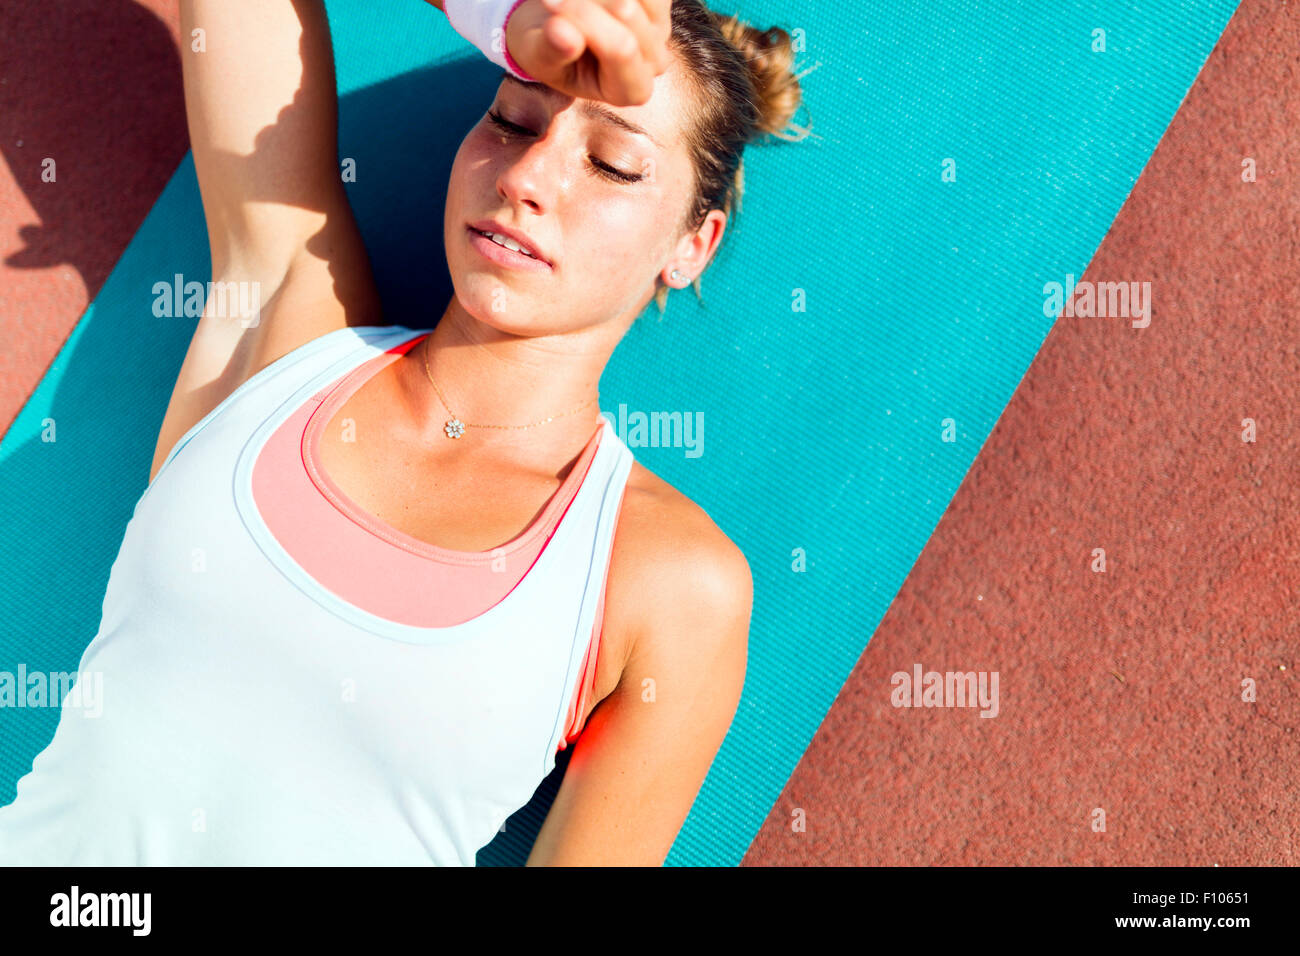 Exhausted beautiful young woman lying on a mat after exercise - Stock Image